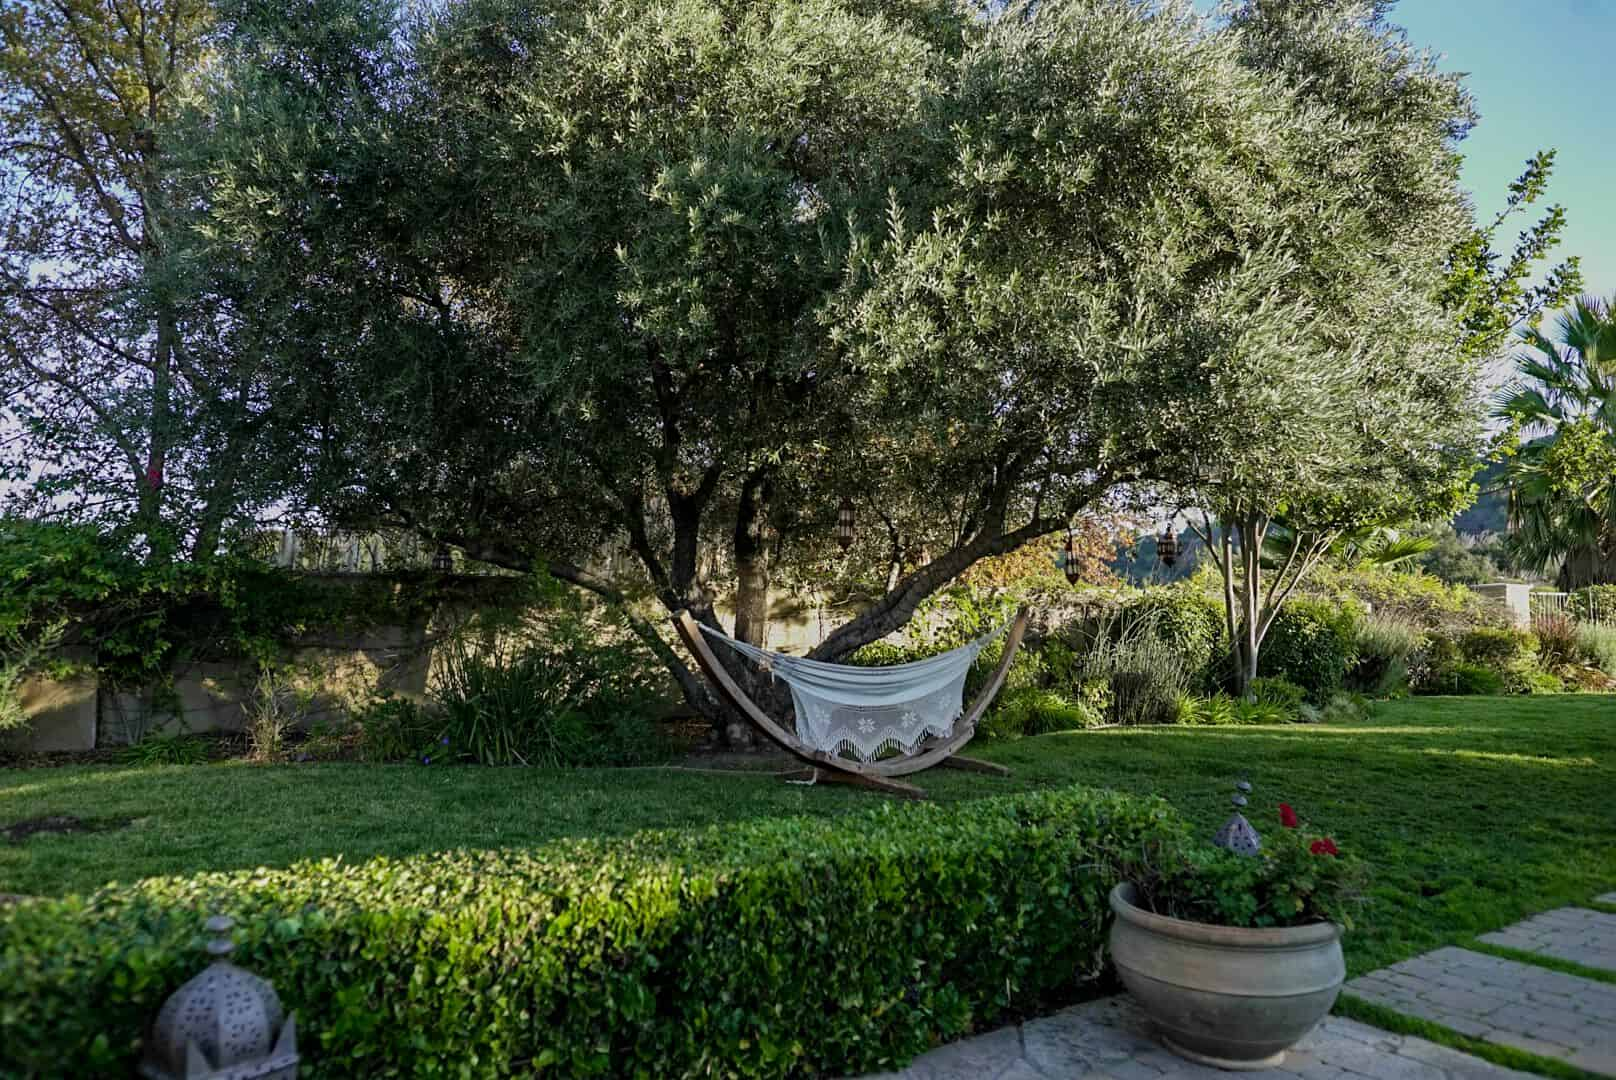 A look at the beautiful garden area of the property, rich with healthy green lawns, plants and trees. Images courtesy of Toptenrealestatedeals.com.